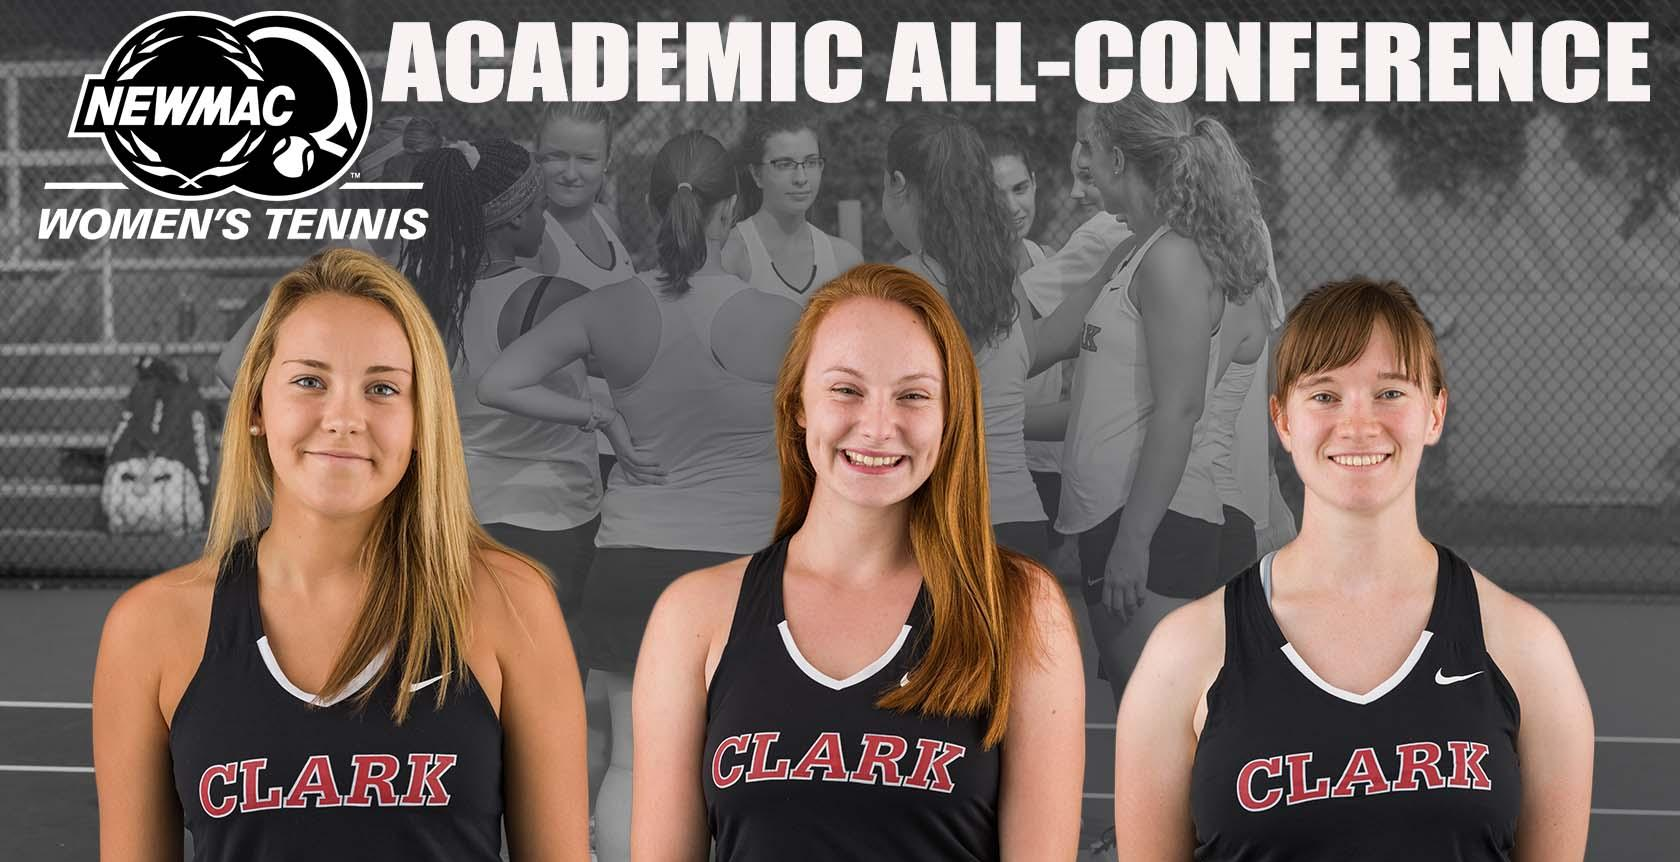 Tarbox, Gates, Benson Named to Women's Tennis NEWMAC Academic All-Conference Team